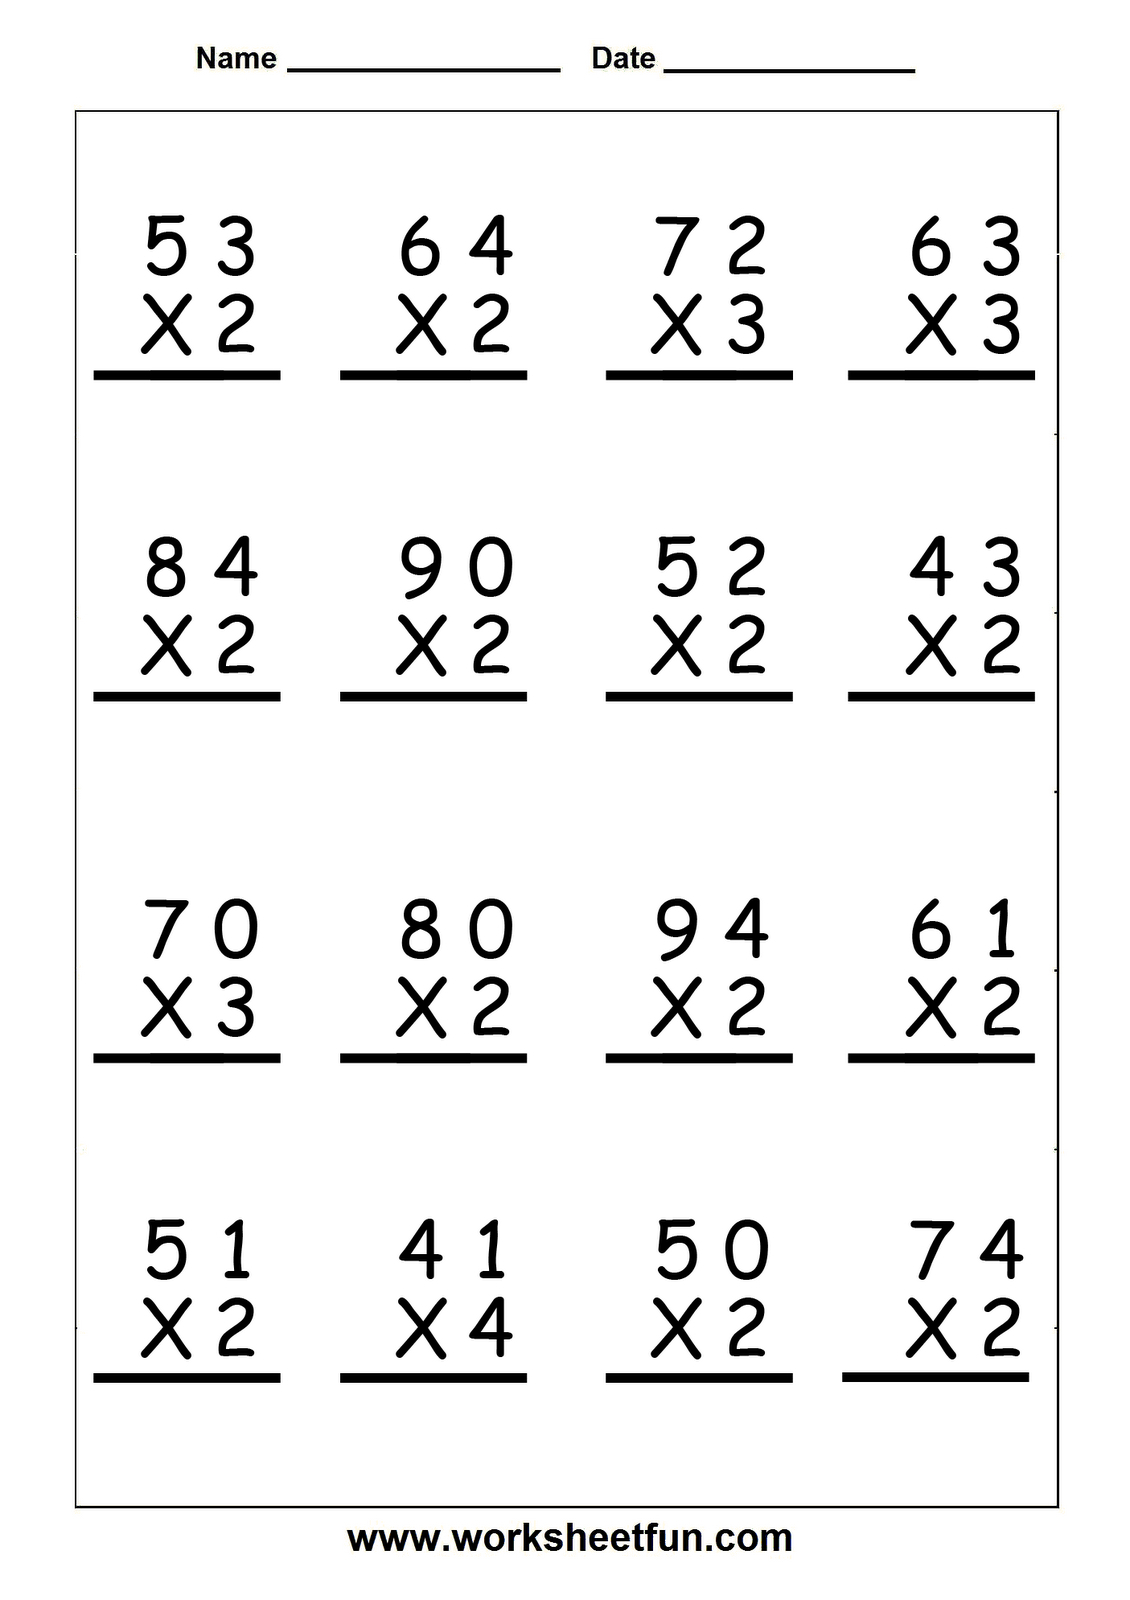 hight resolution of 5 Minute Multiplication Worksheets   Printable Worksheets and Activities  for Teachers